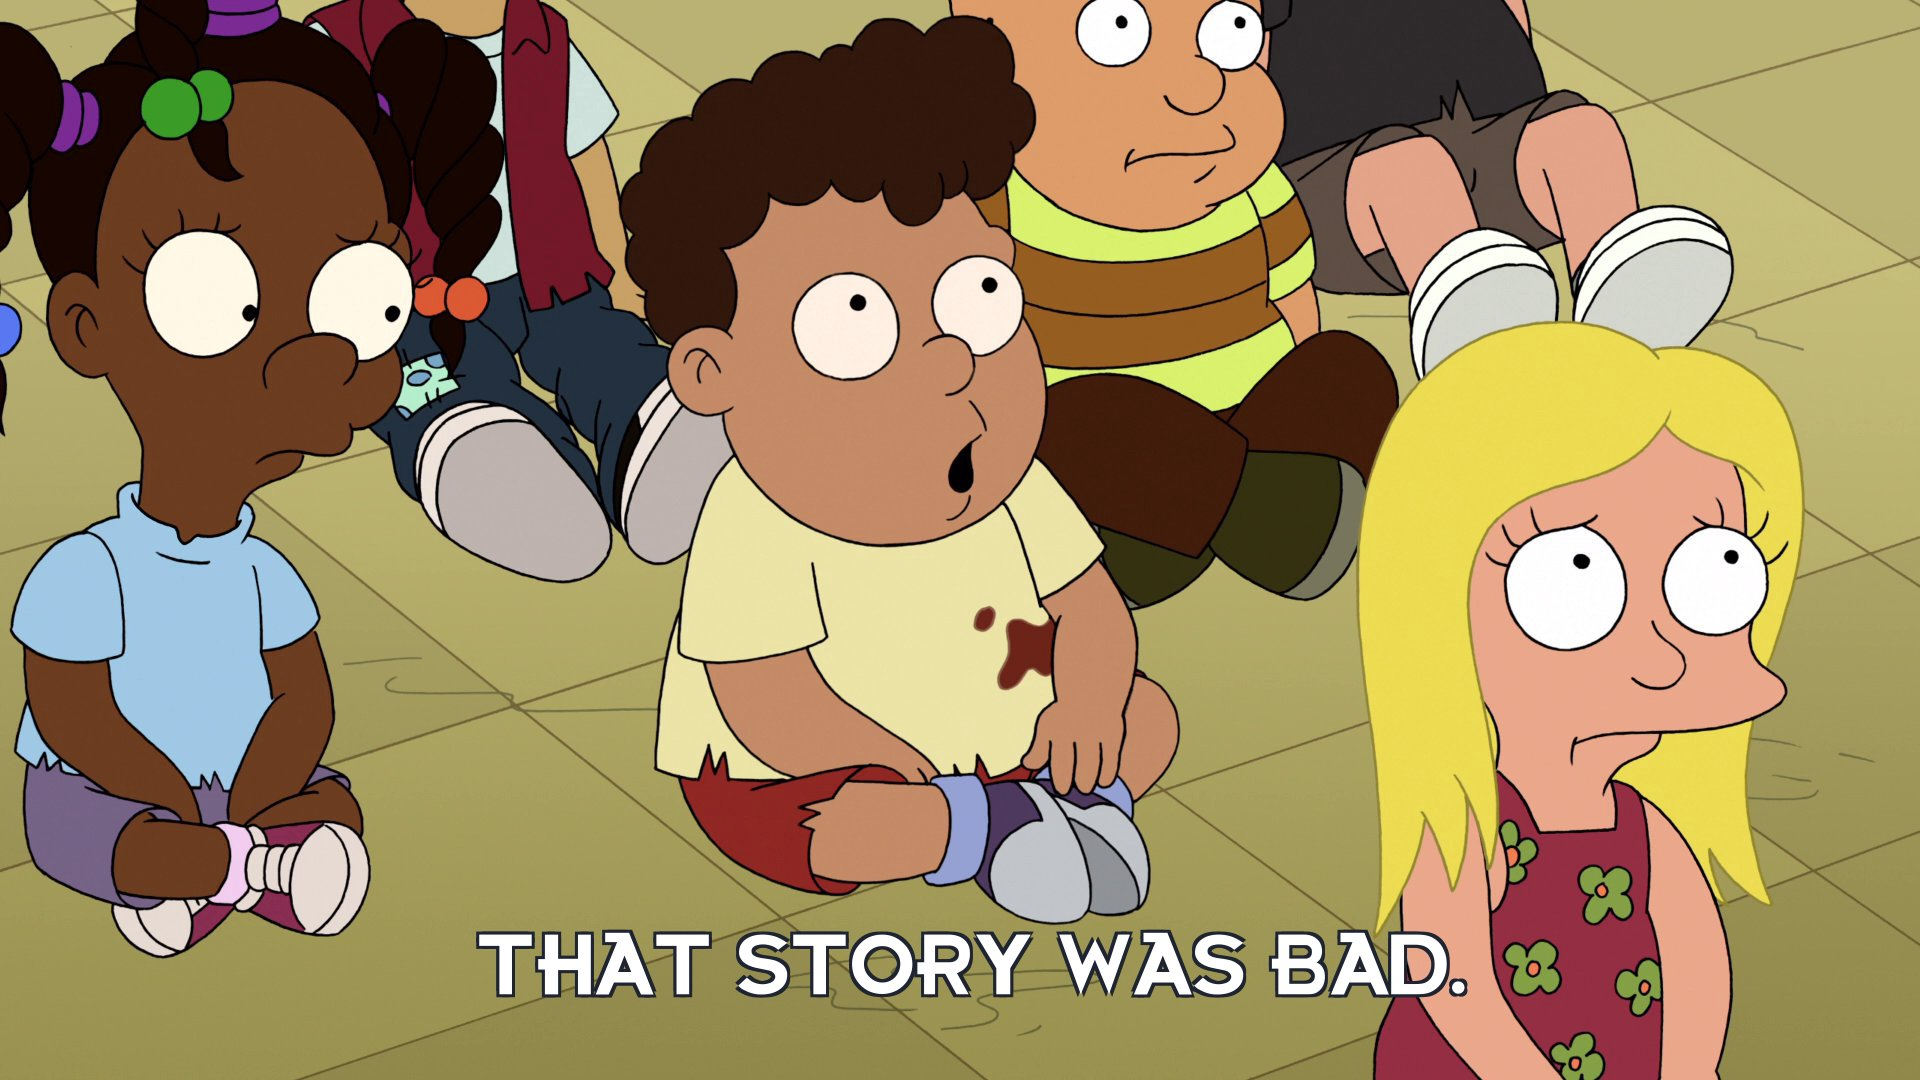 Albert: That story was bad.